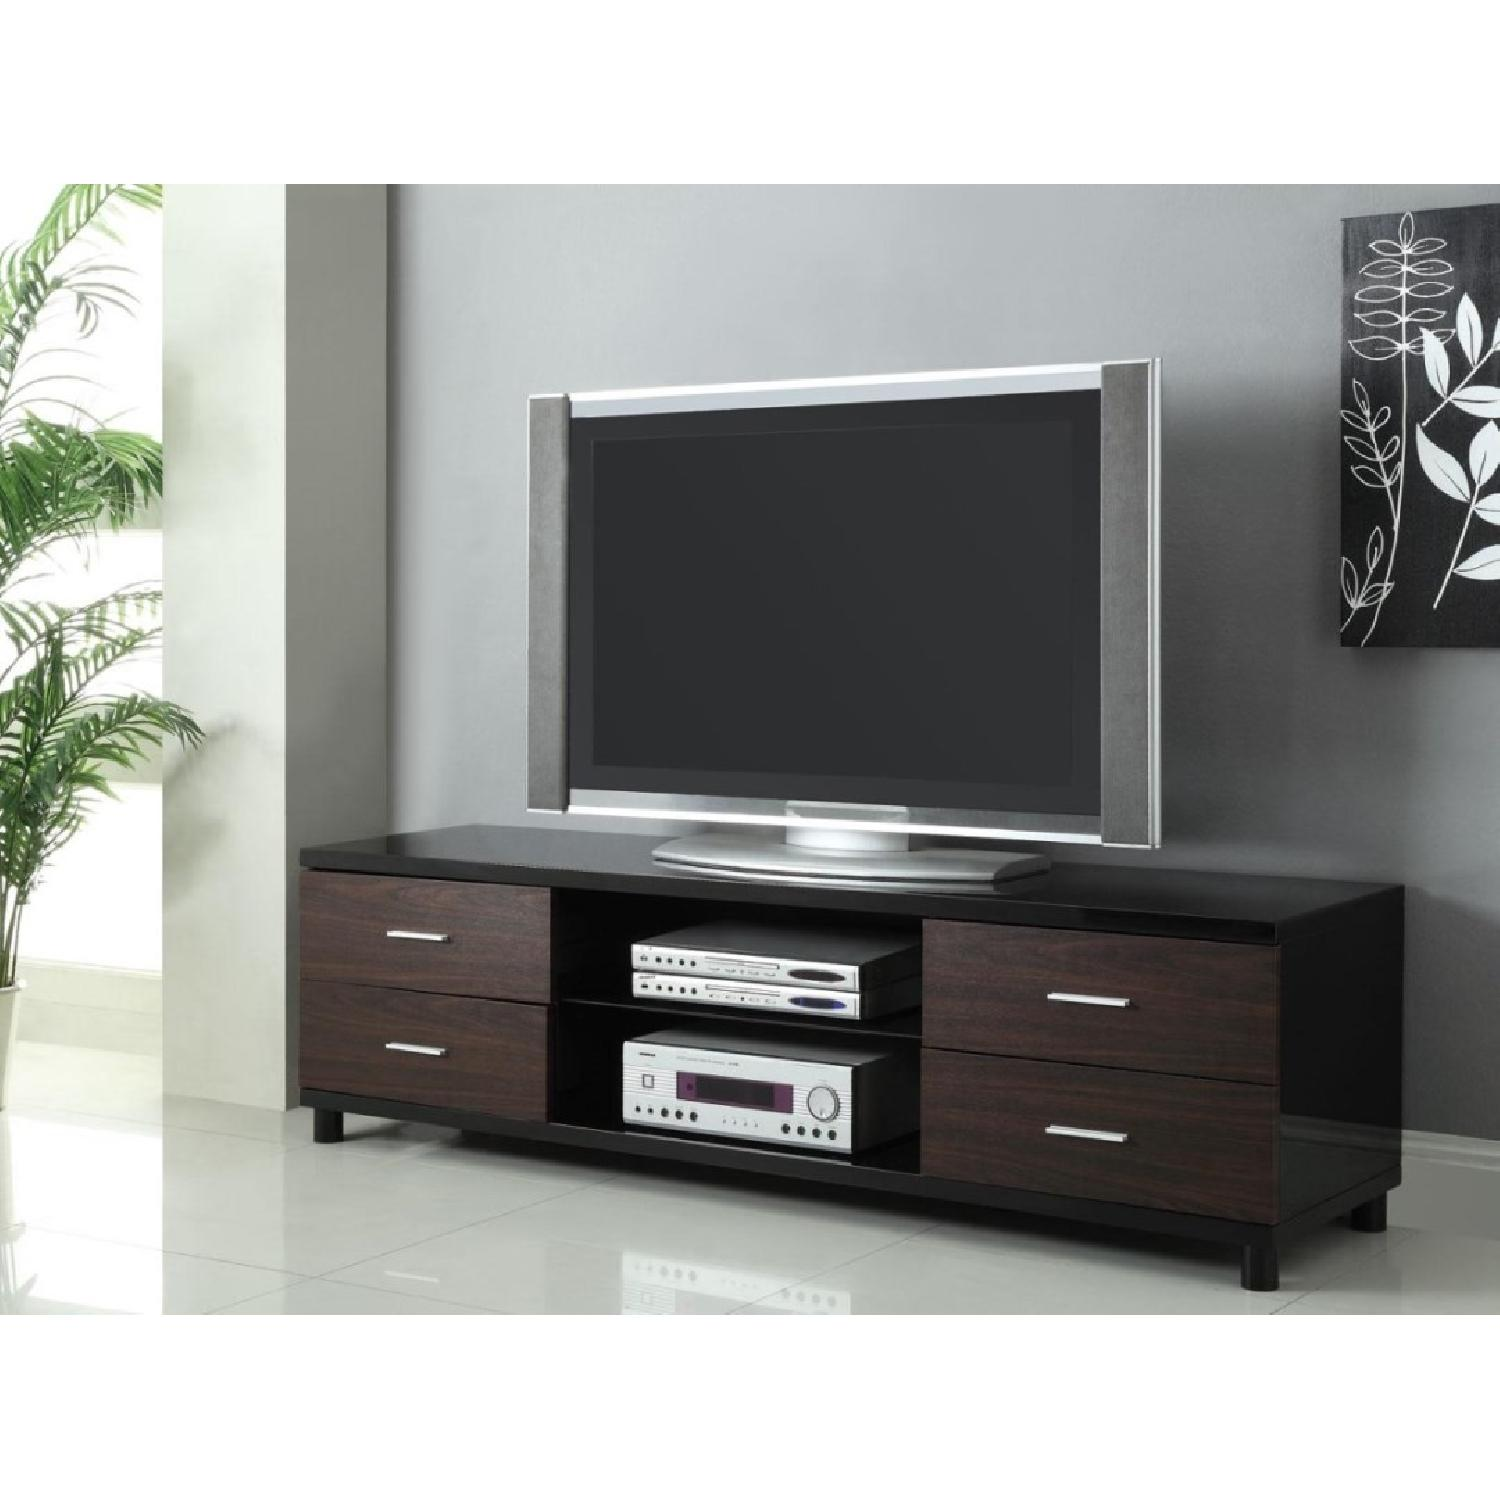 Long Contemporary TV Stand w/ 4 Utility Drawers & 2 Media Shelves - image-1